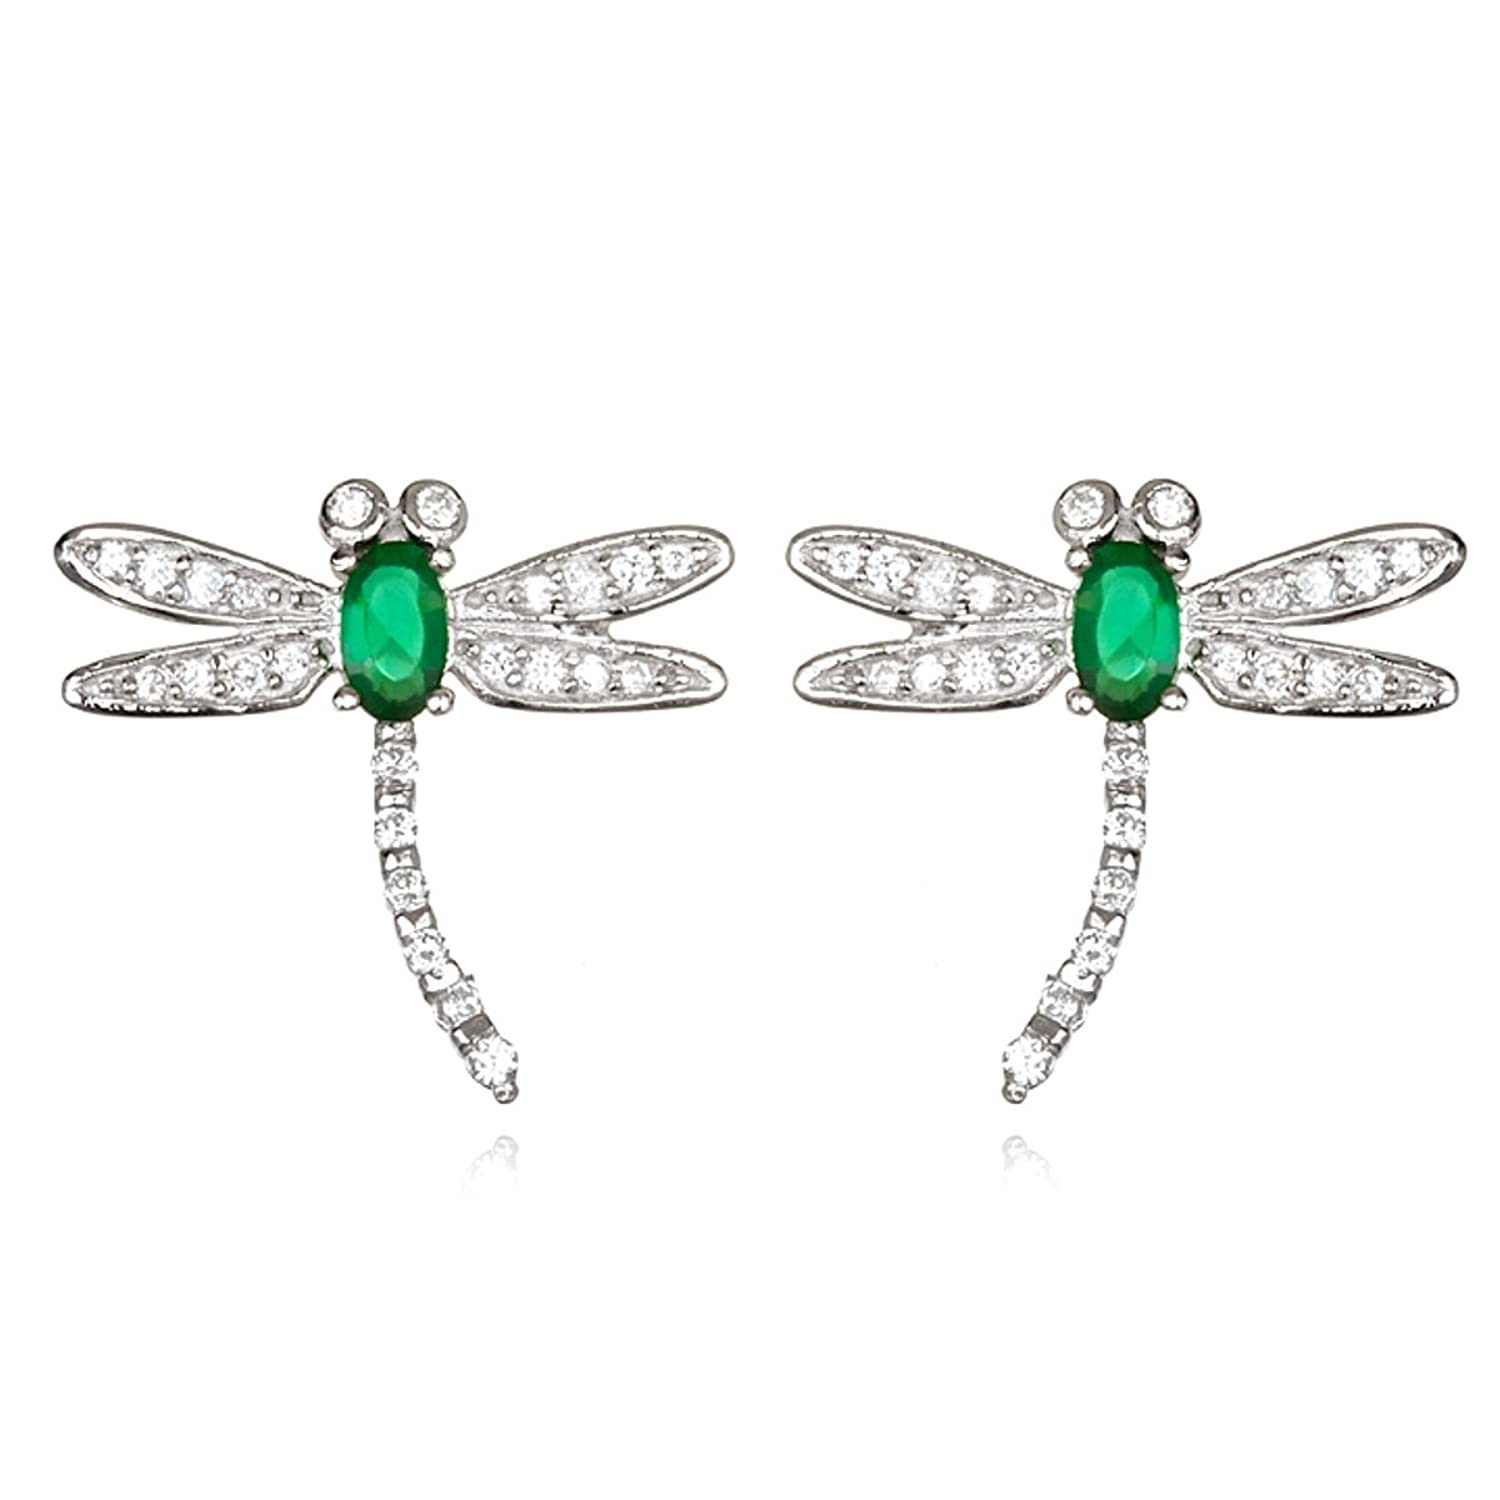 Rhodium Plated Silver Simulated Emerald Mini Dragonfly Earring